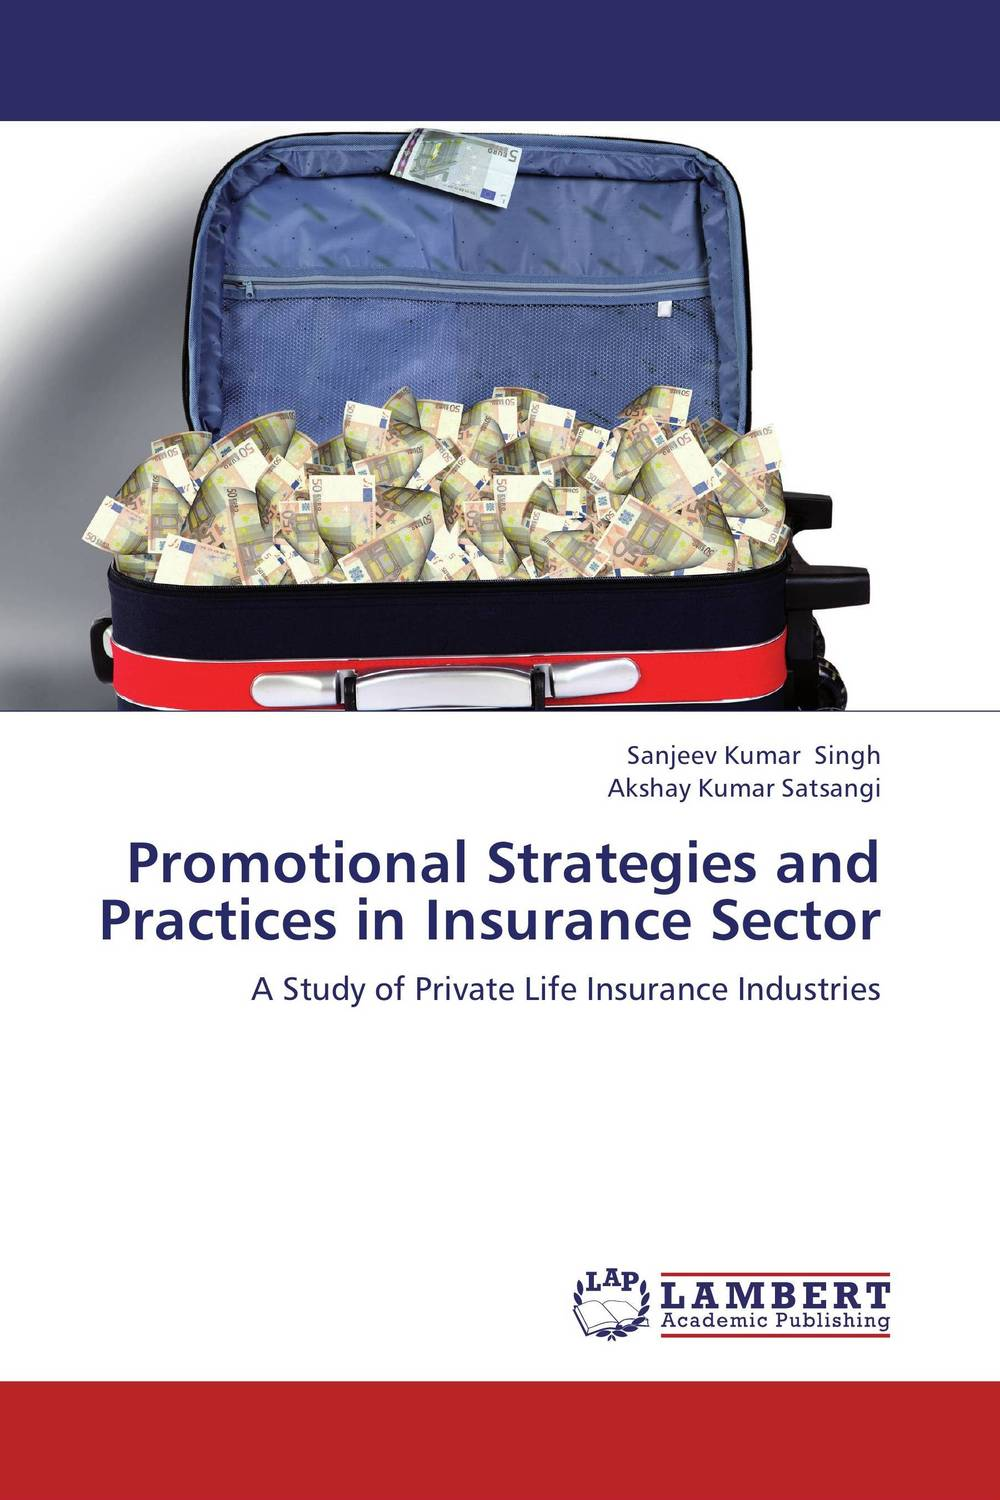 Promotional Strategies and Practices in Insurance Sector david parmenter the leading edge manager s guide to success strategies and better practices